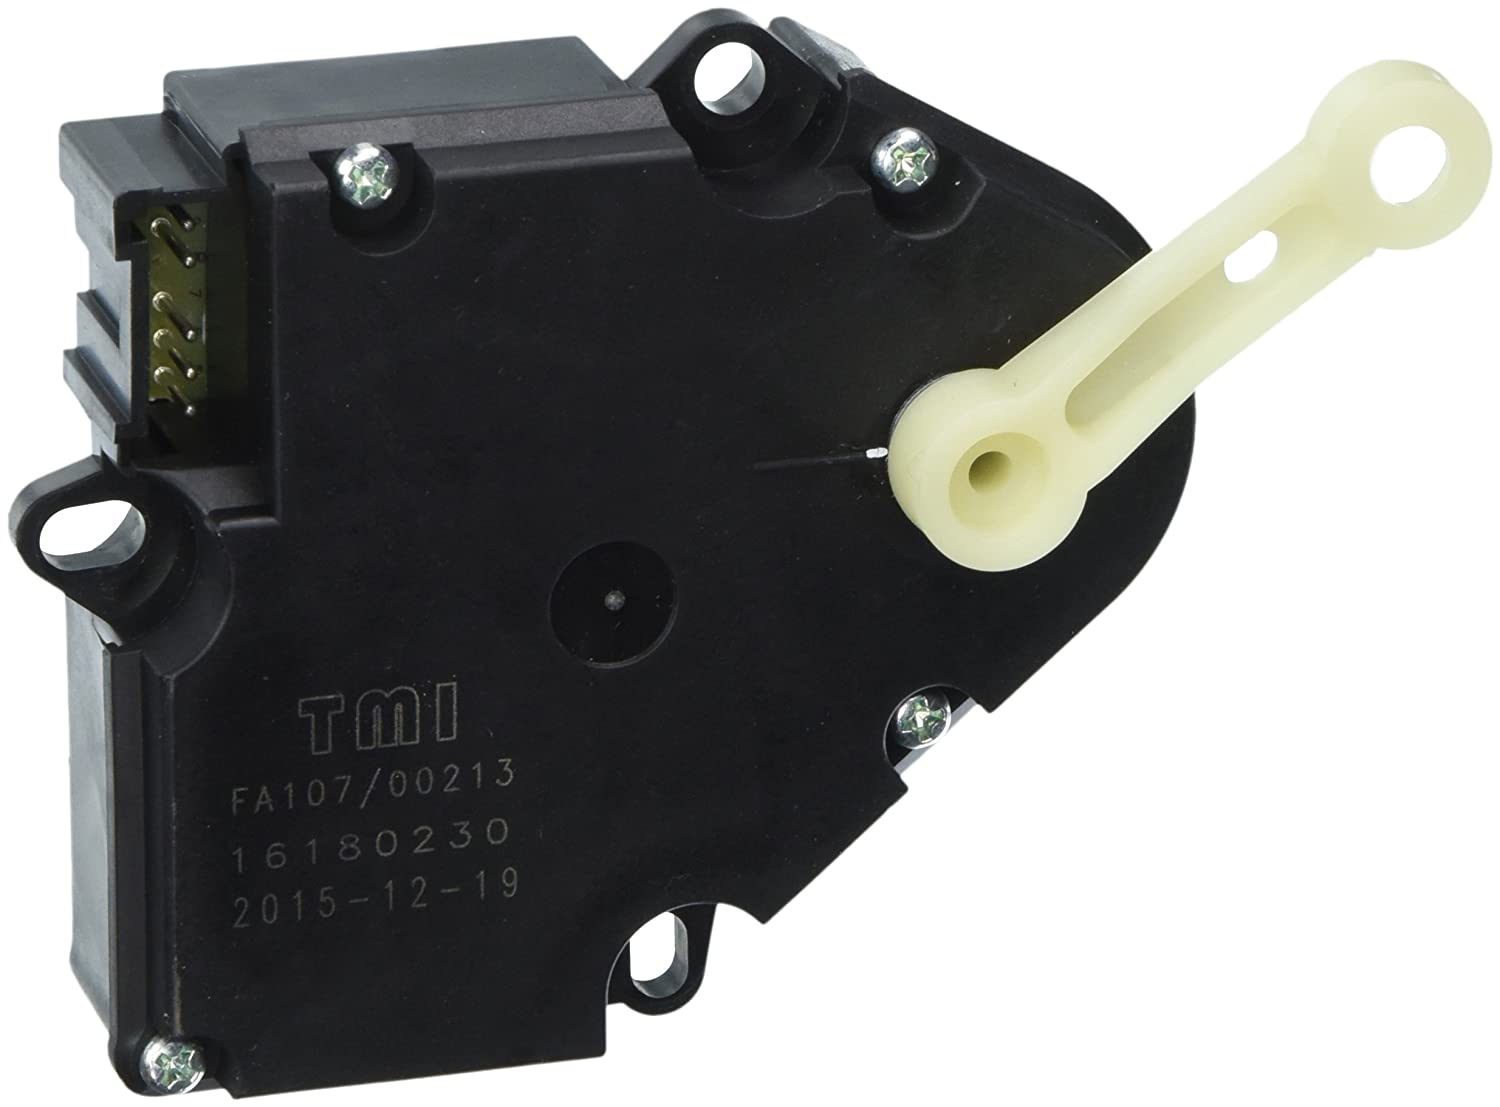 Genuine GM 16180230 A/C Temperature Valve Actuator